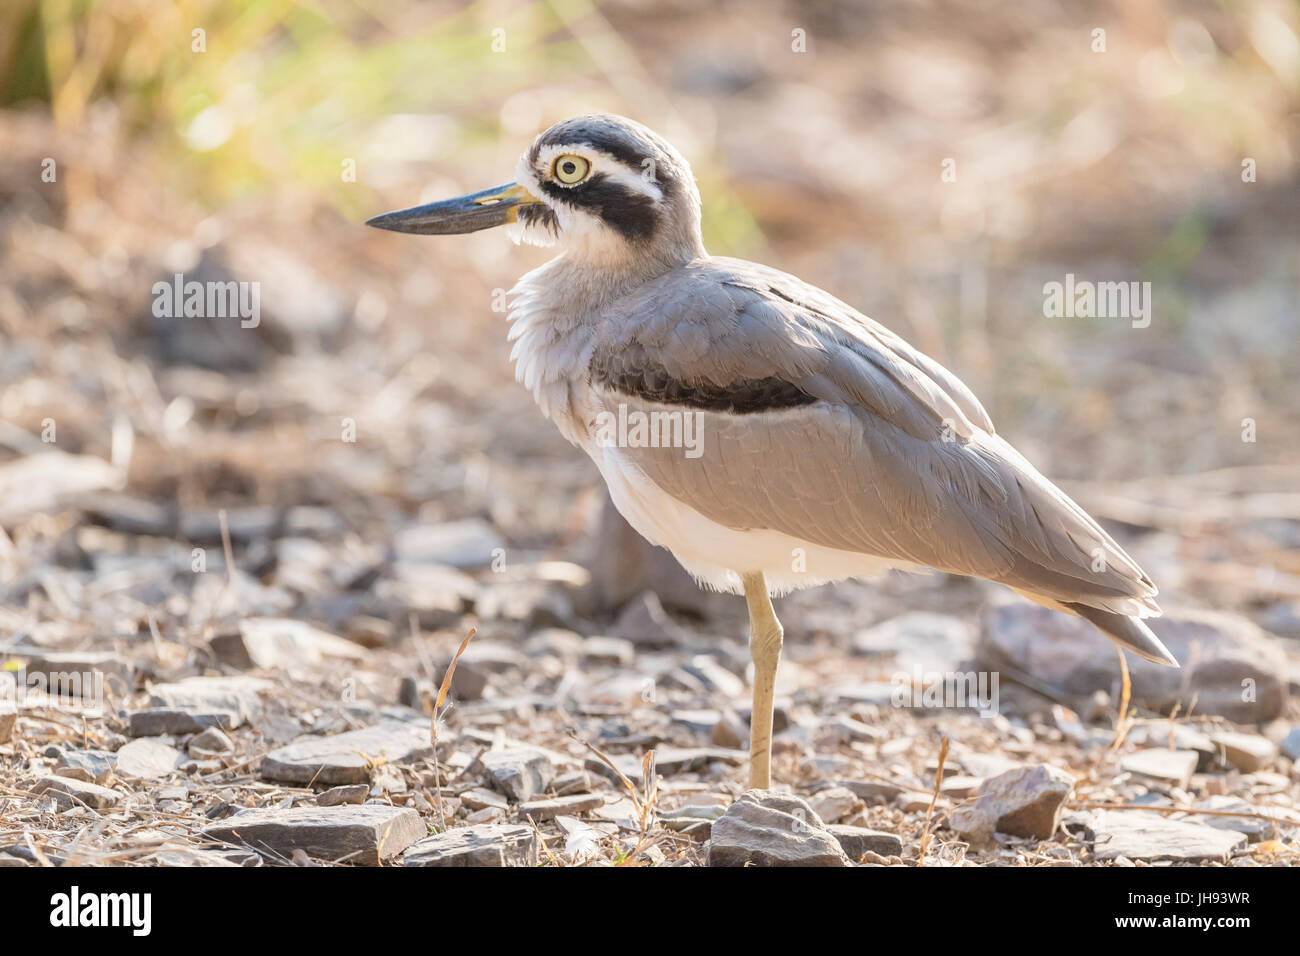 Great Thick-knee (Esacus recurvirostris) standing on ground, Ranthambhore national park, Rajasthan, India - Stock Image